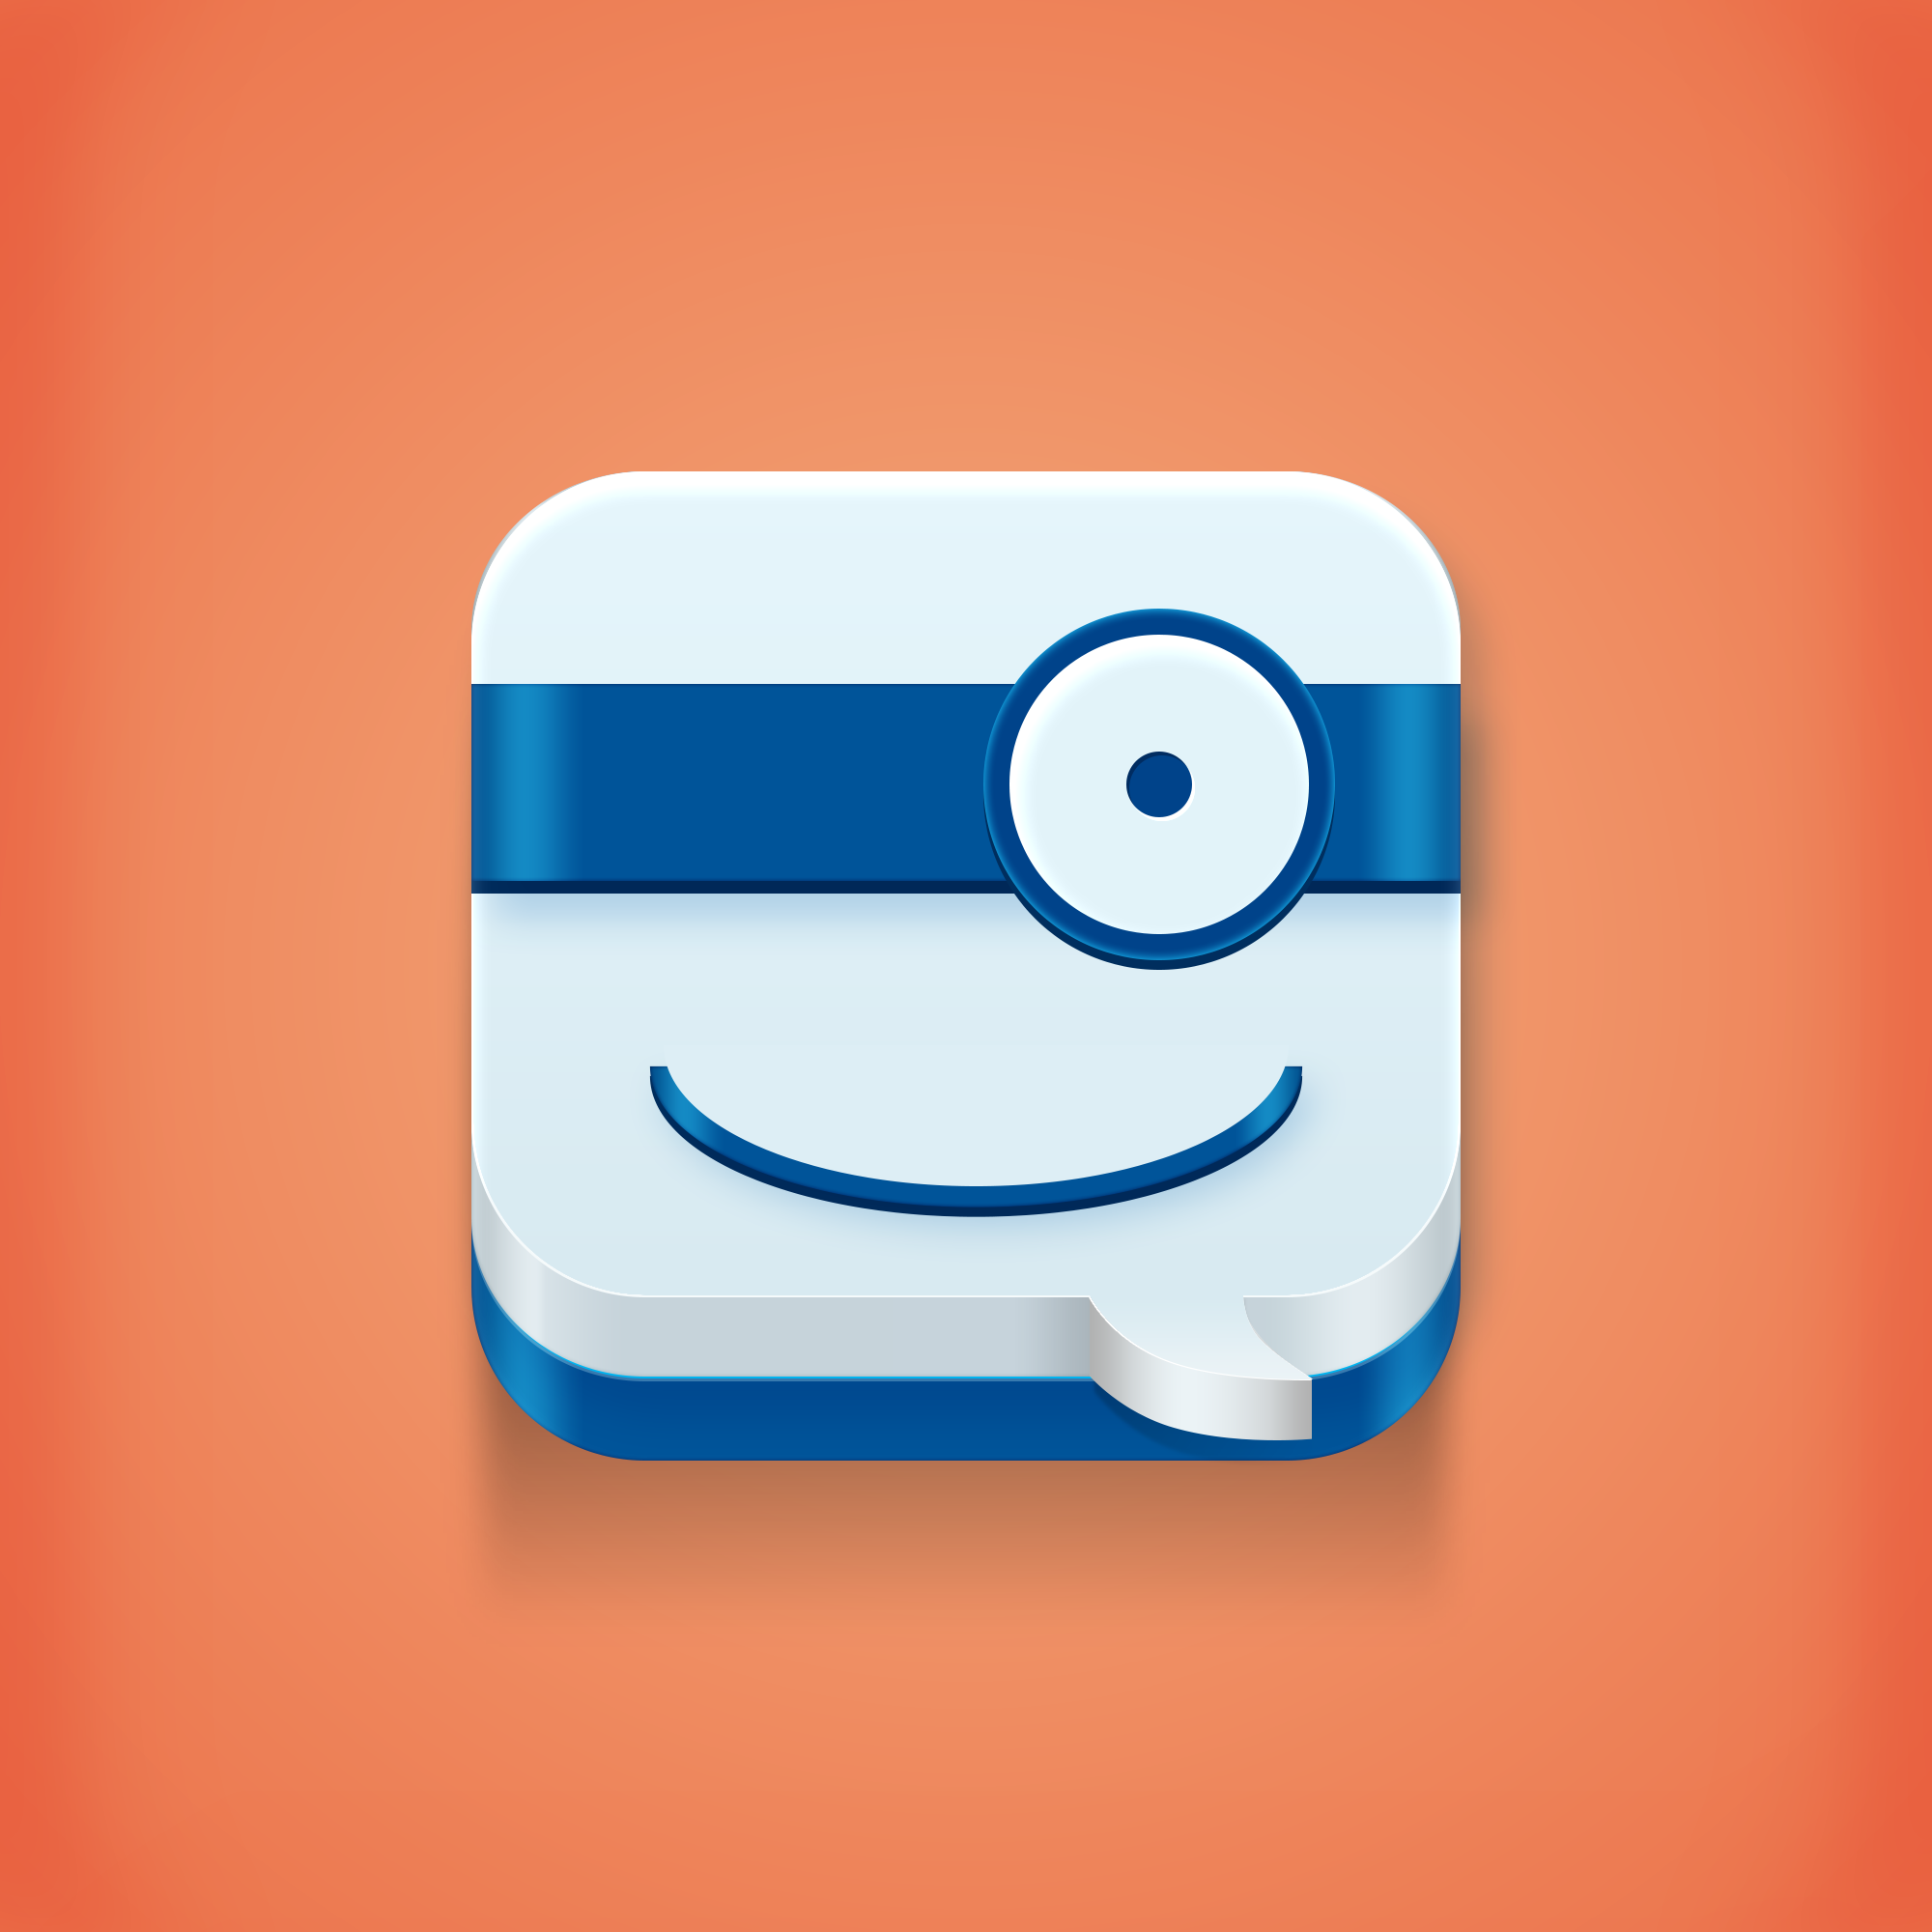 A Messaging App icon,made for fun! App icon, Mobile icon